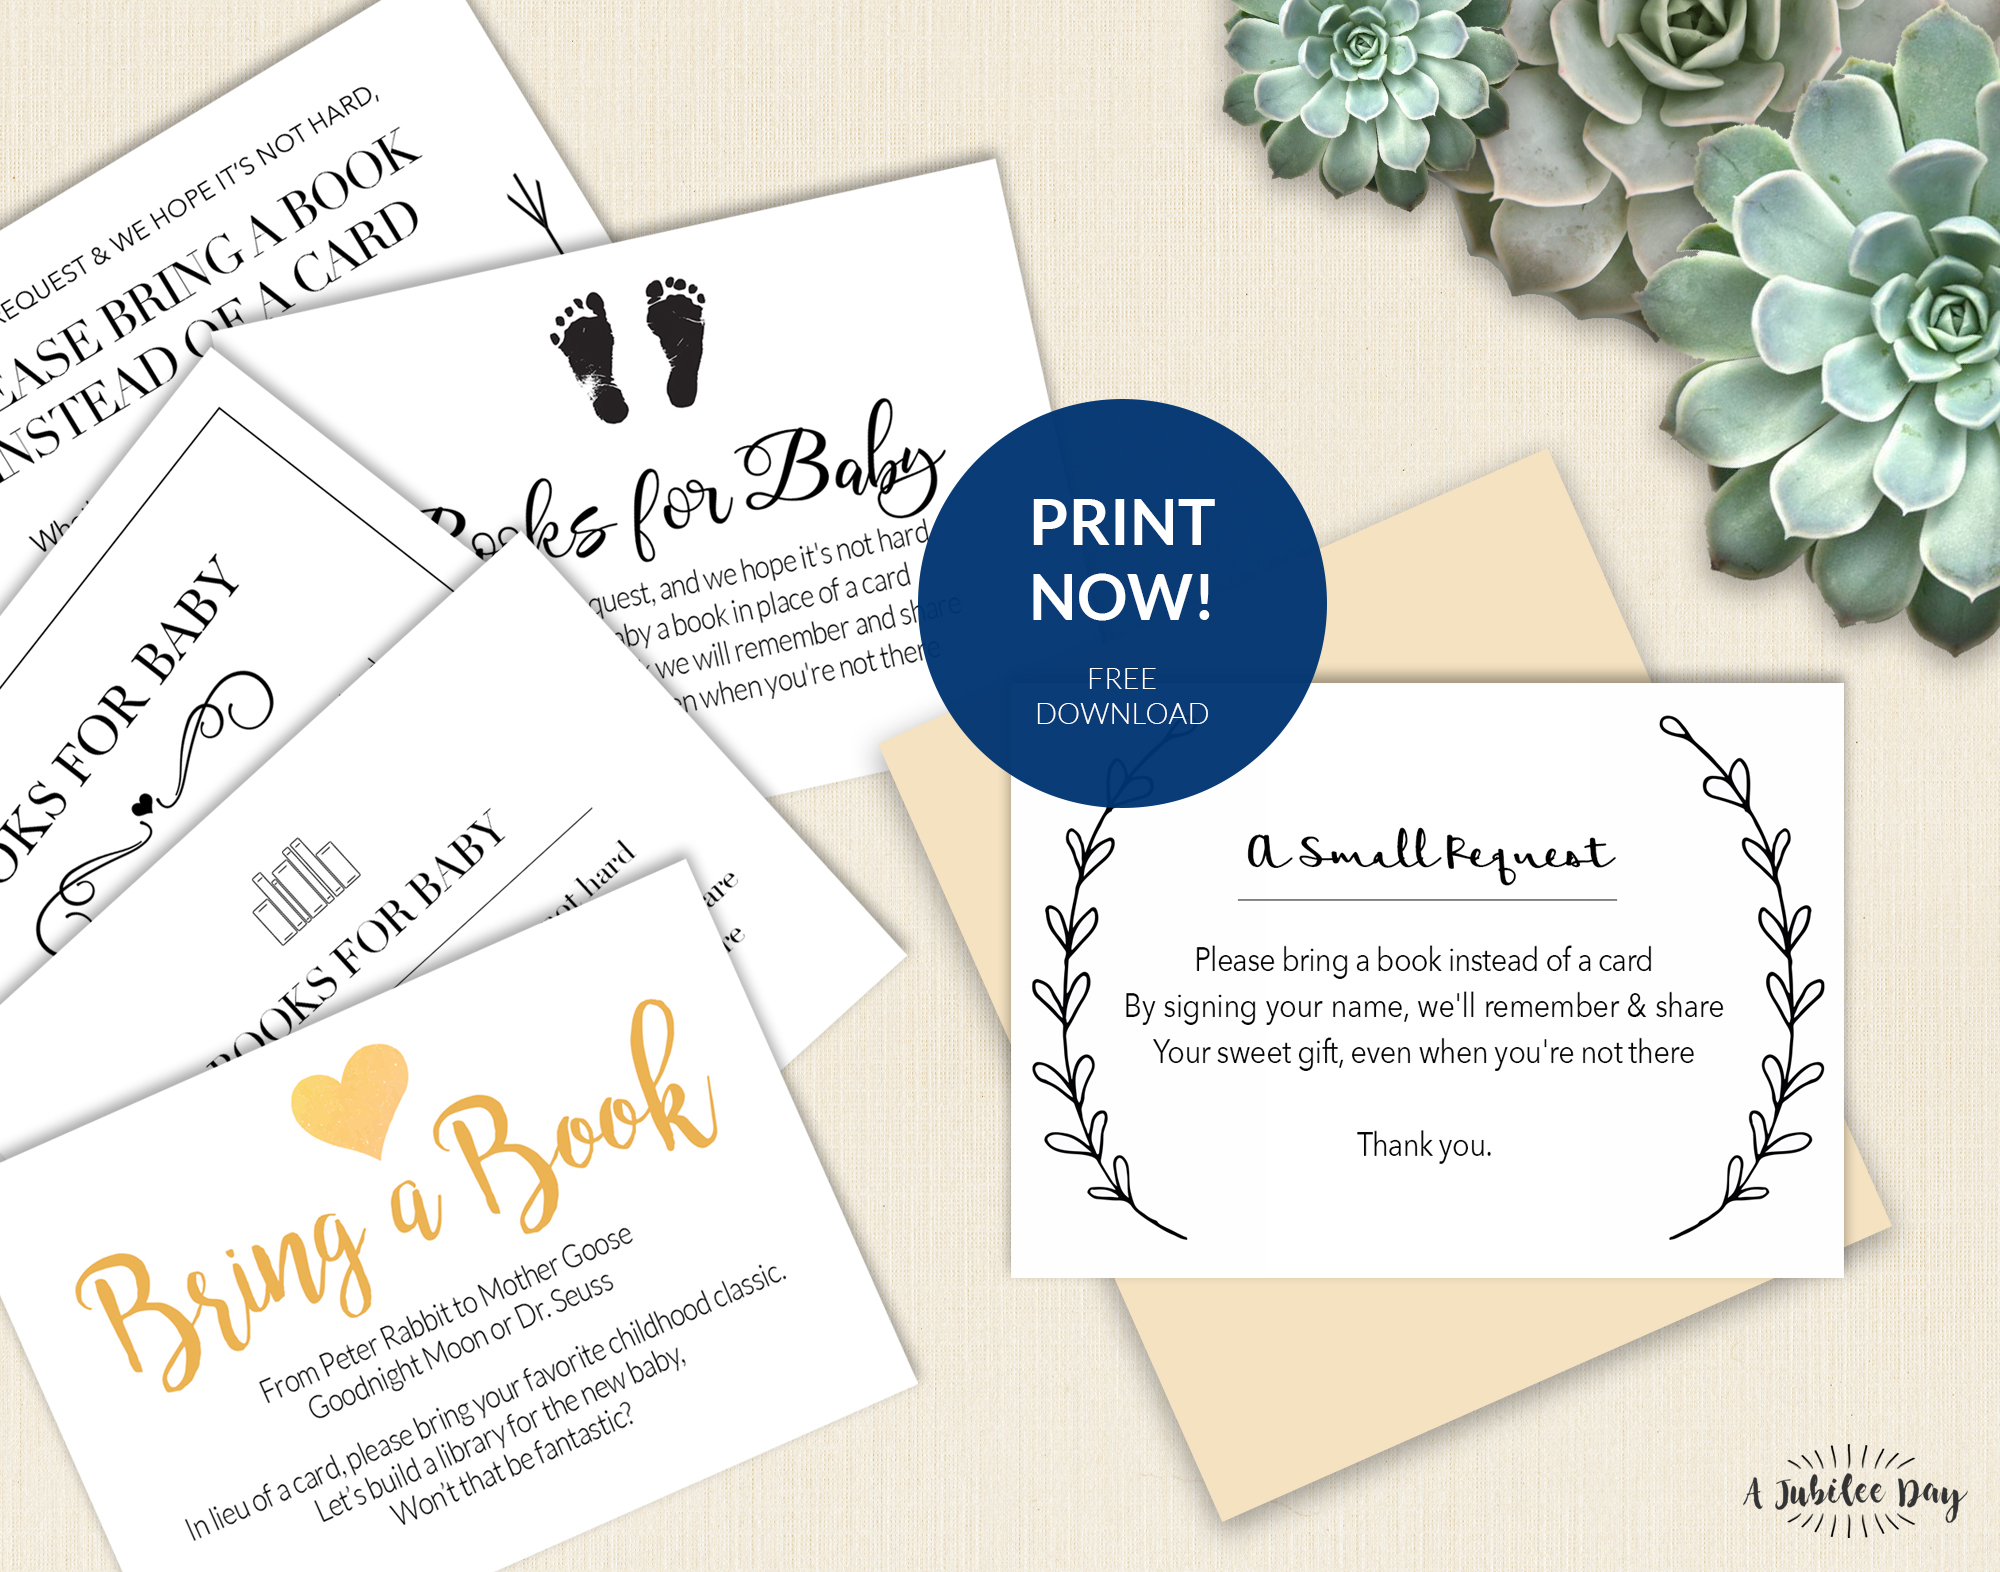 image regarding Free Printable Baby Registry Cards named Deliver A E-book In its place of Card (Totally free Printable!) - A Jubilee Working day